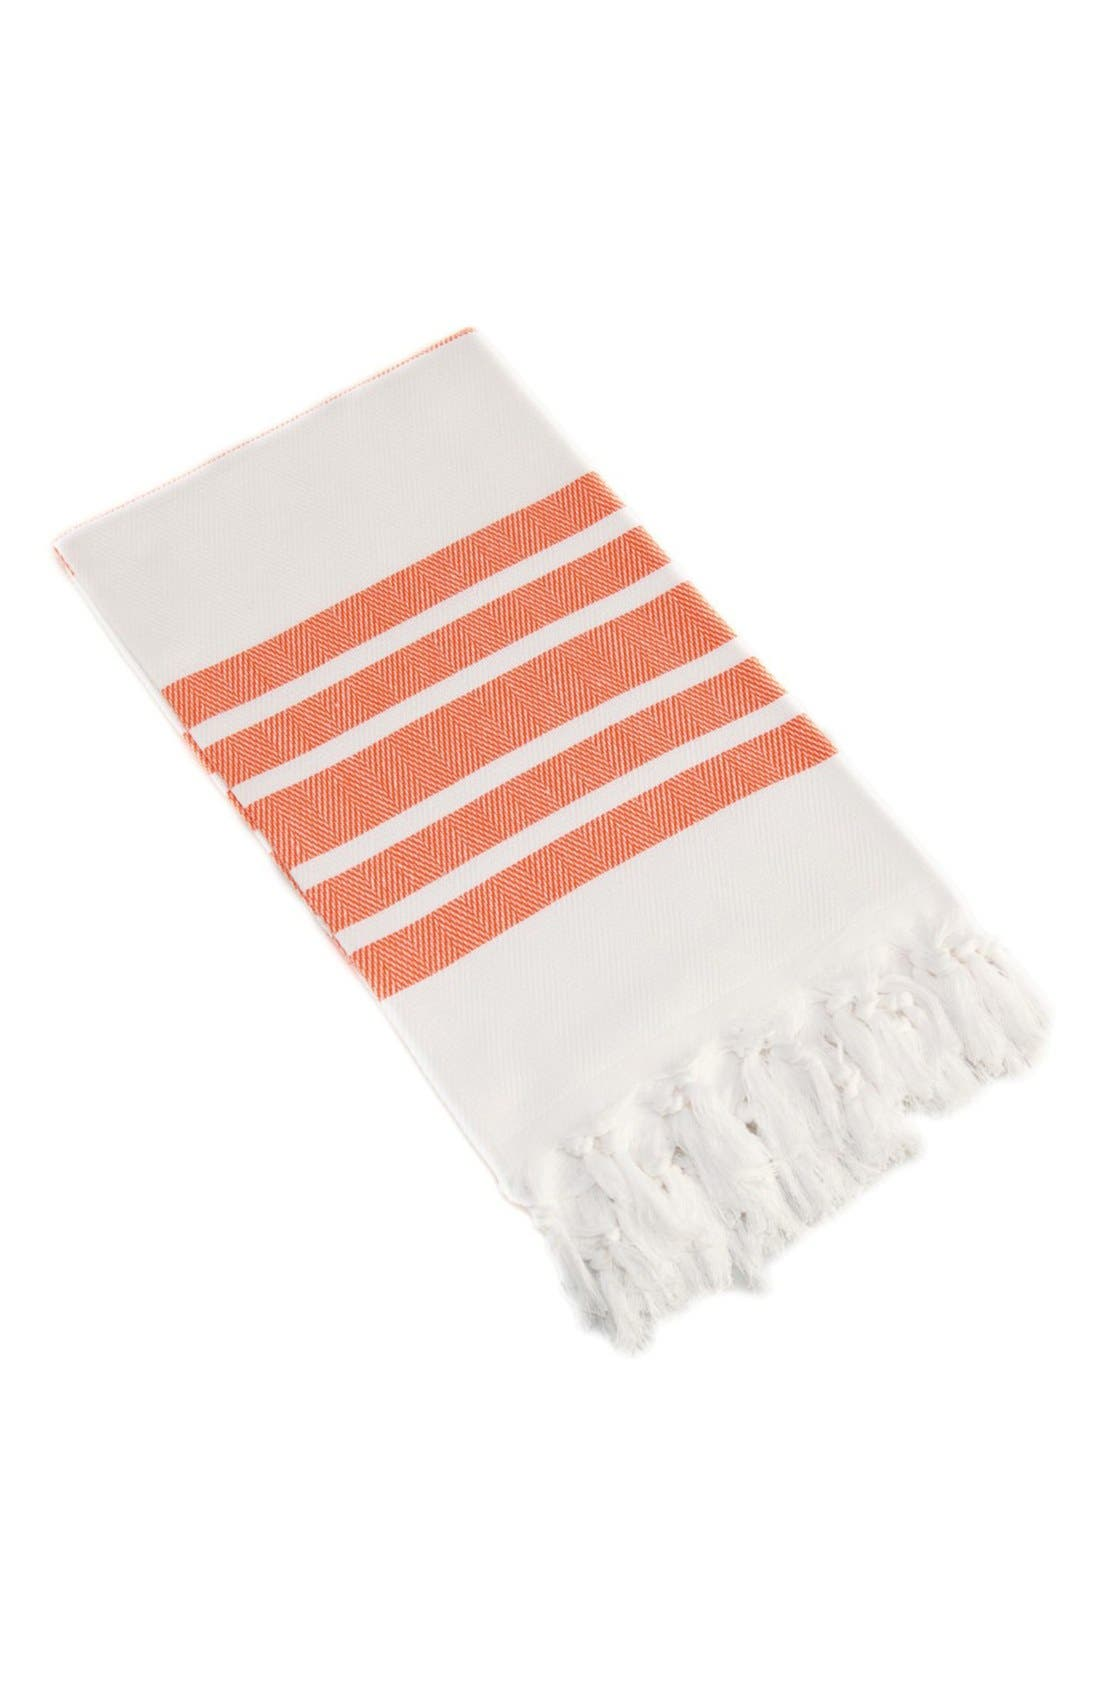 Alternate Image 1 Selected - Linum Home Textiles Herringbone Striped Turkish Pestemal Towel